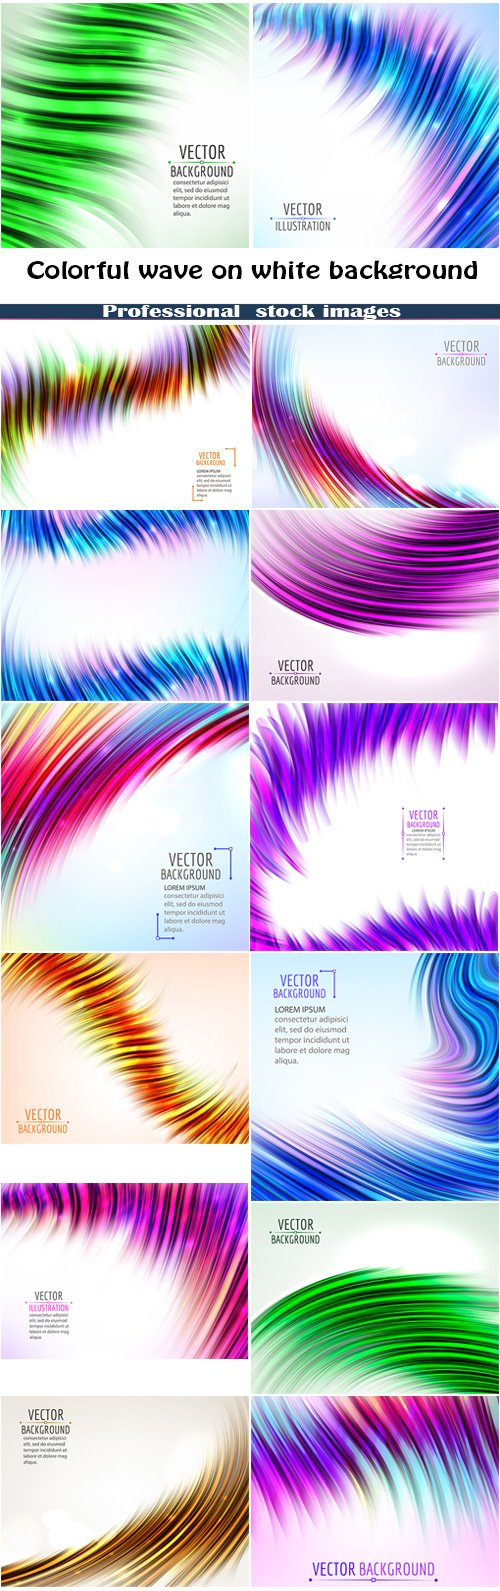 Abstract colorful wave on white background